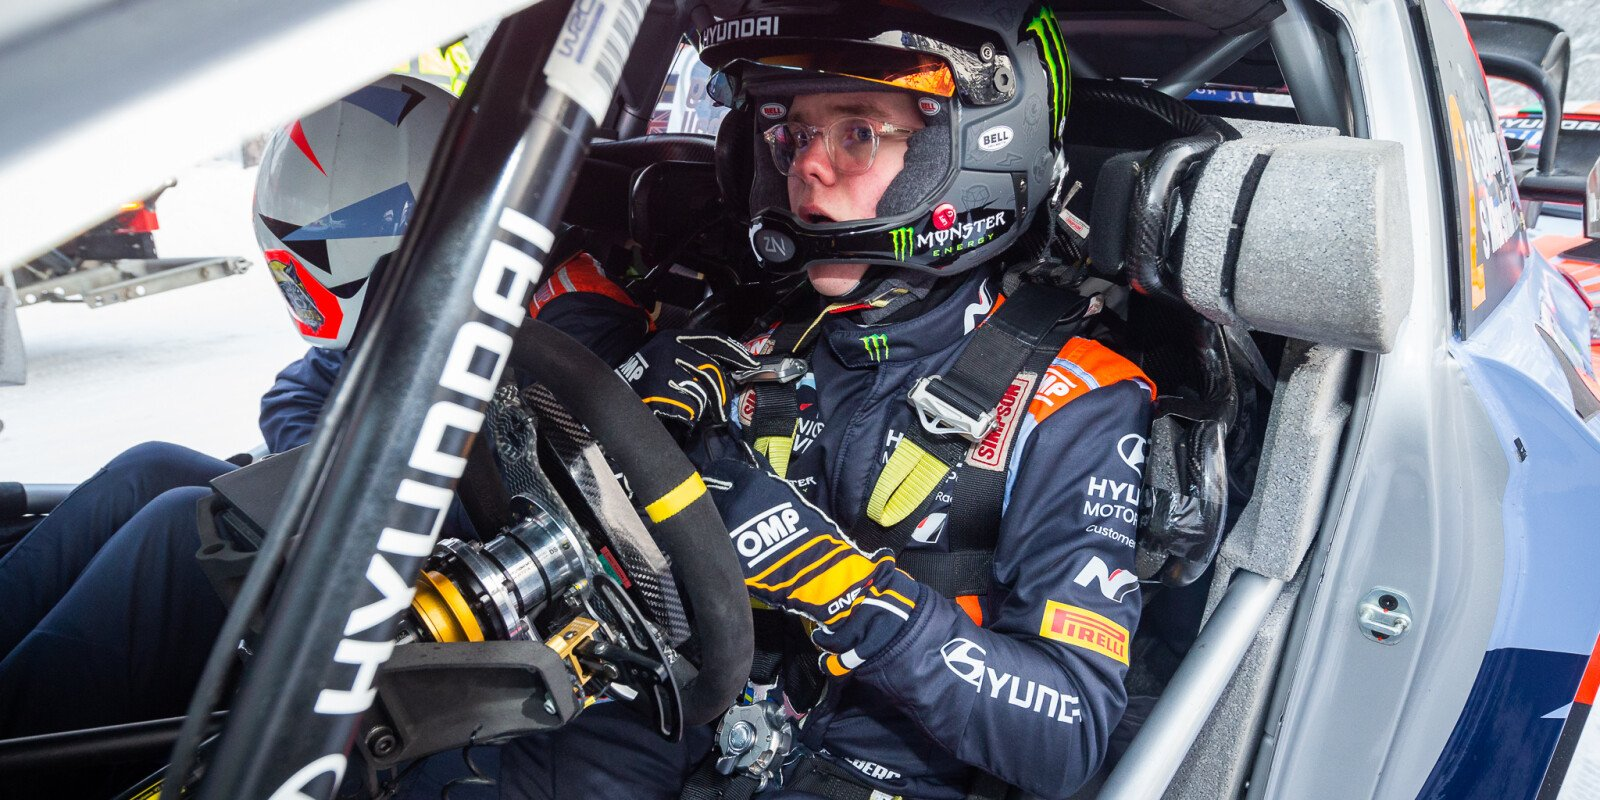 Images from WRC - R2 - Finland - 2021